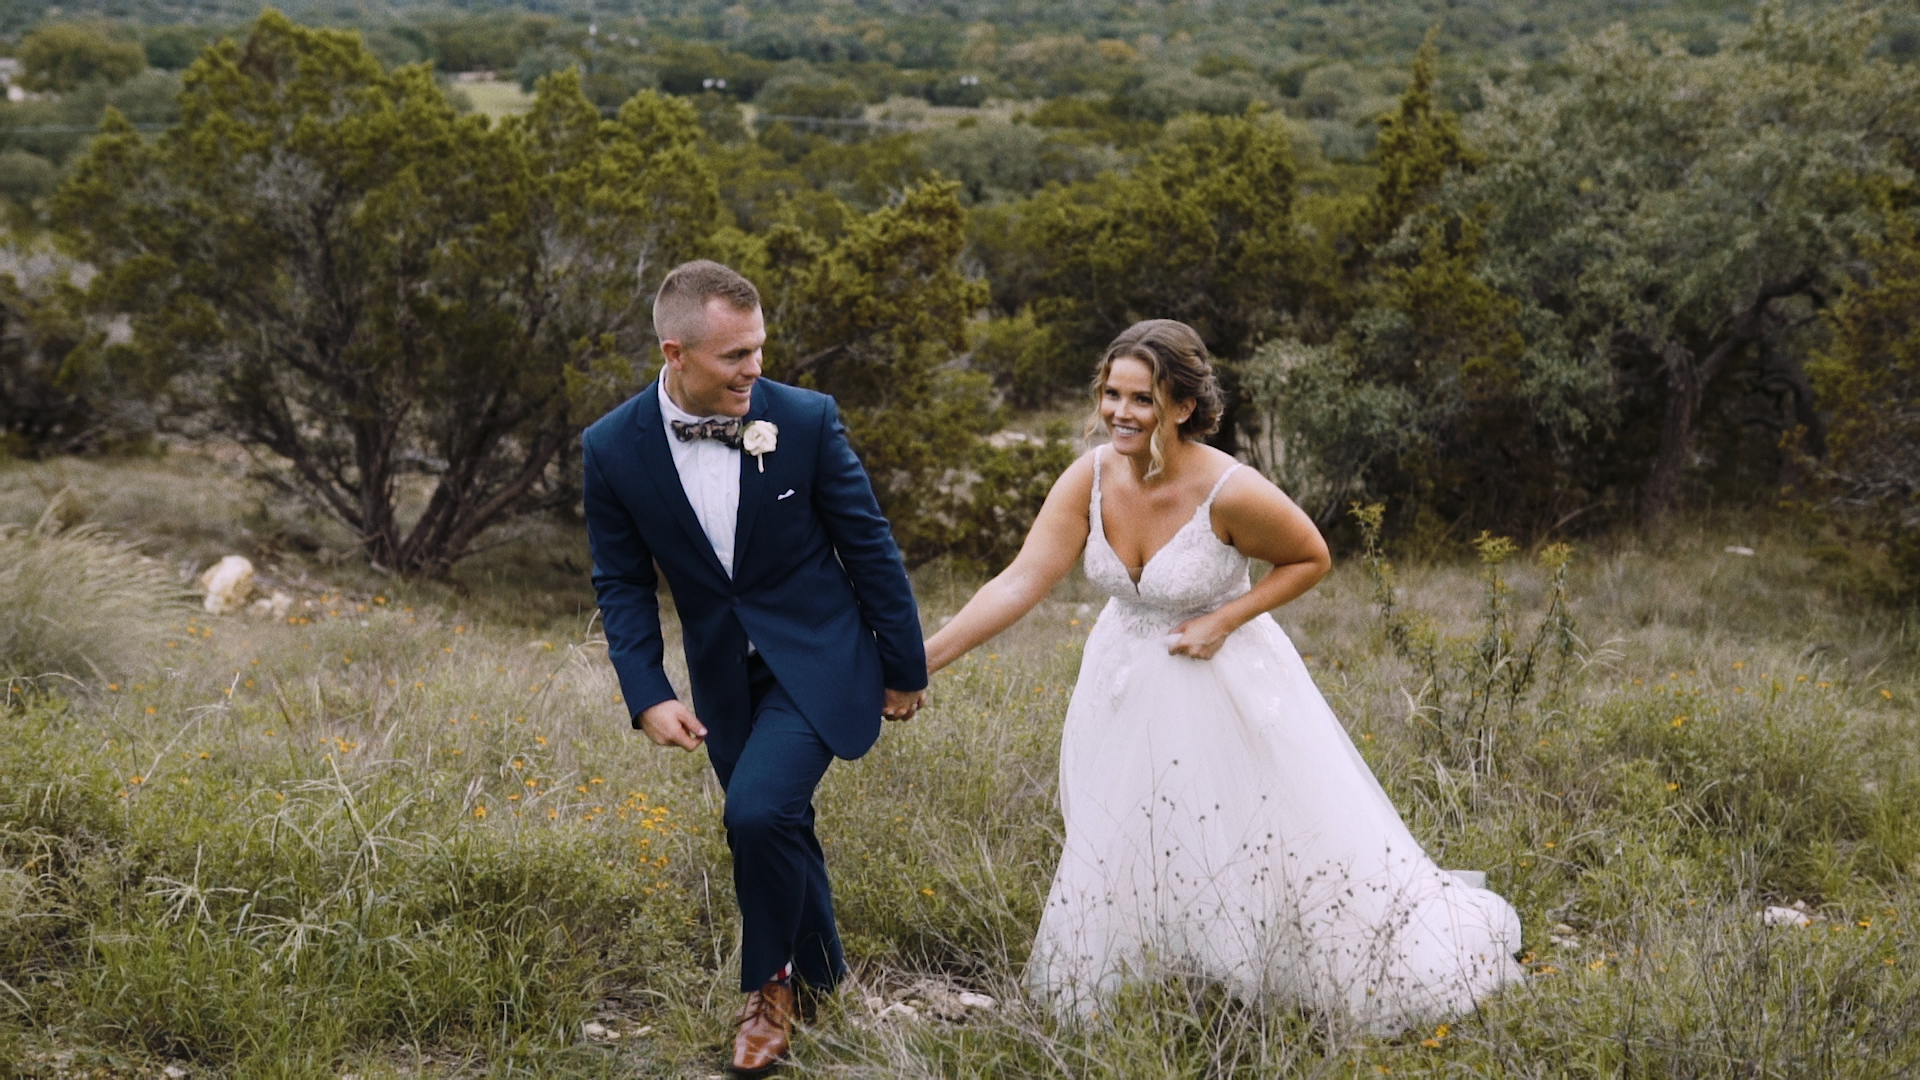 Sierra + Chase | Austin, Texas | Canyonwood Ridge